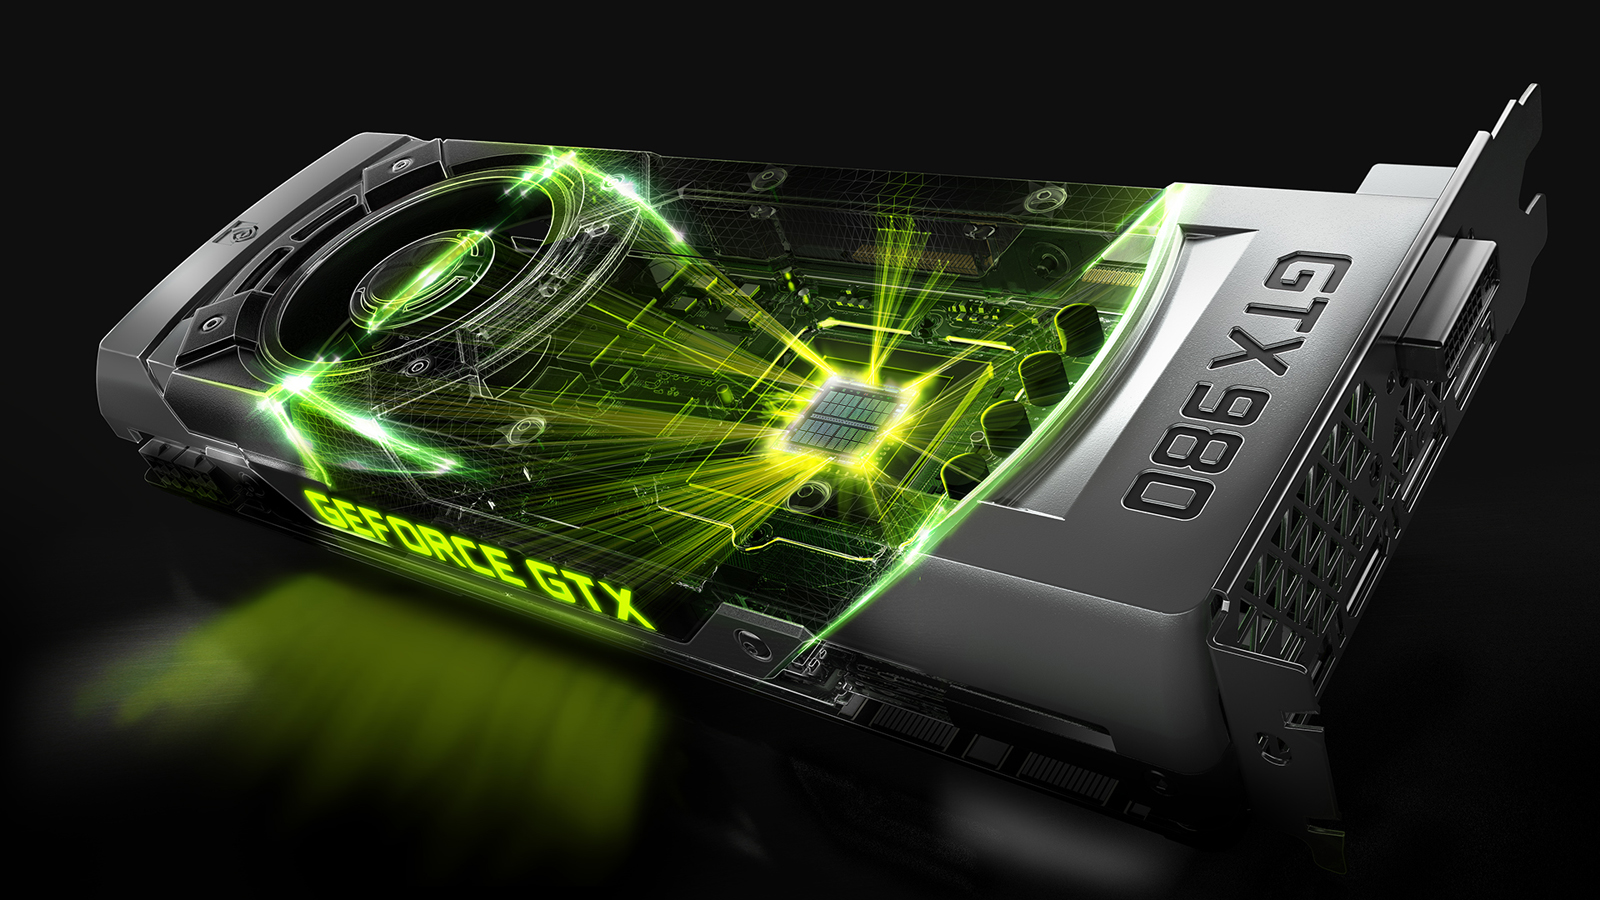 Msi wallpapers and background - Nvidia Geforce Gtx 980 Notebookcheck Com Technik Faq